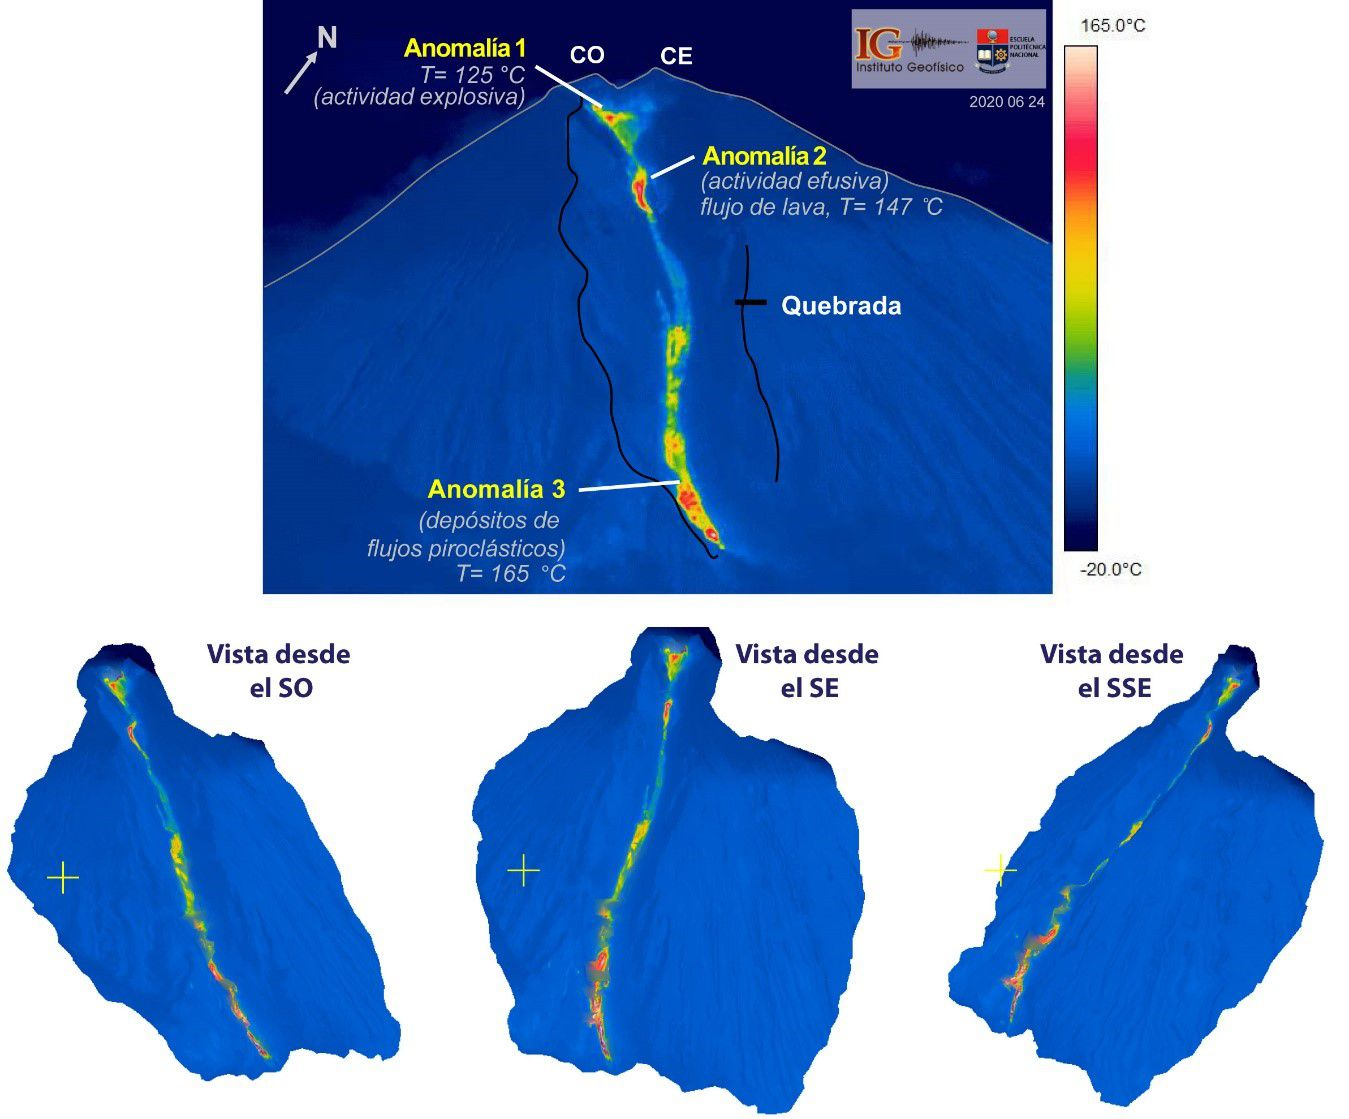 Sangay - Upper: Thermal image of the south-eastern flank of the Sangay volcano, area with the highest temperature: yellow-red-white and area with the lowest temperature: dark blue. The escarpment of the ravine formed during this eruptive phase (black line) is shown, which shelters thermal anomalies linked to explosive activity, effusion and pyroclastic deposits. Bottom: thermal image mosaics of the gorge on the southeast flank with three views, from left to right: southwest, southeast and east-southeast. - Thermal image and mosaics: S Vallejo Vargas, IG EPN.